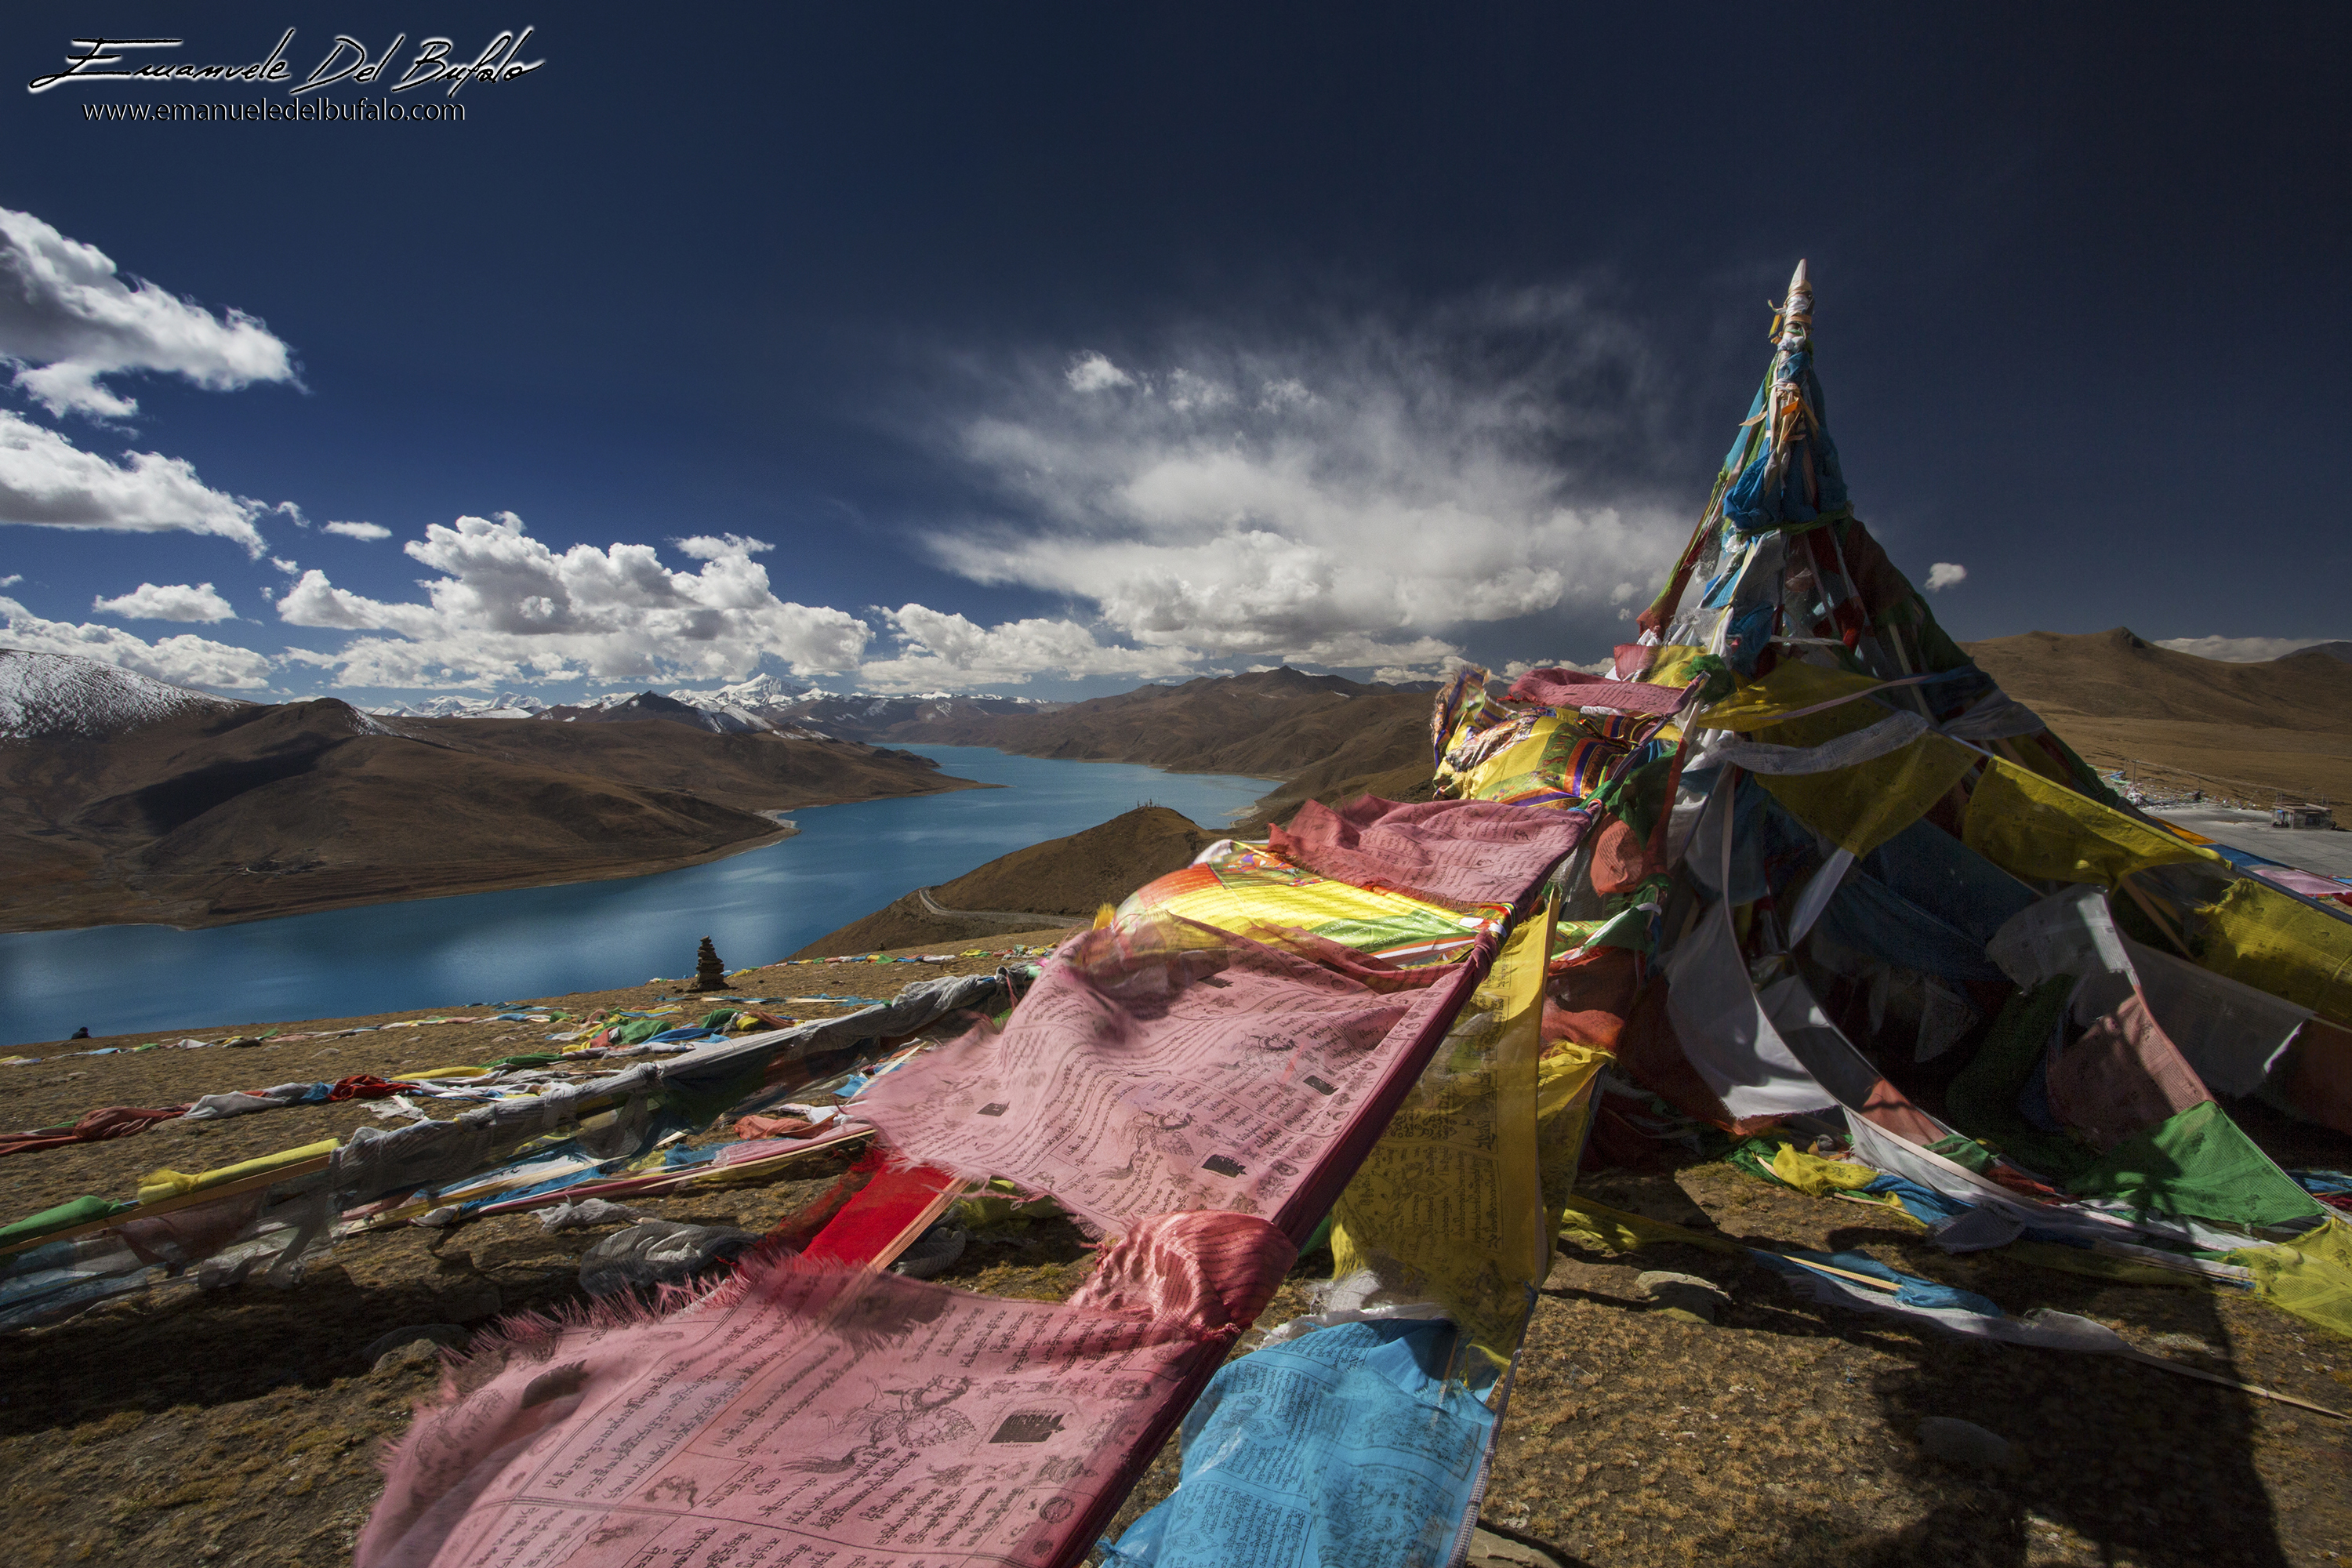 www.emanueledelbufalo.com #tibet #himalayas #flags #lake #landscape #the long term traveler